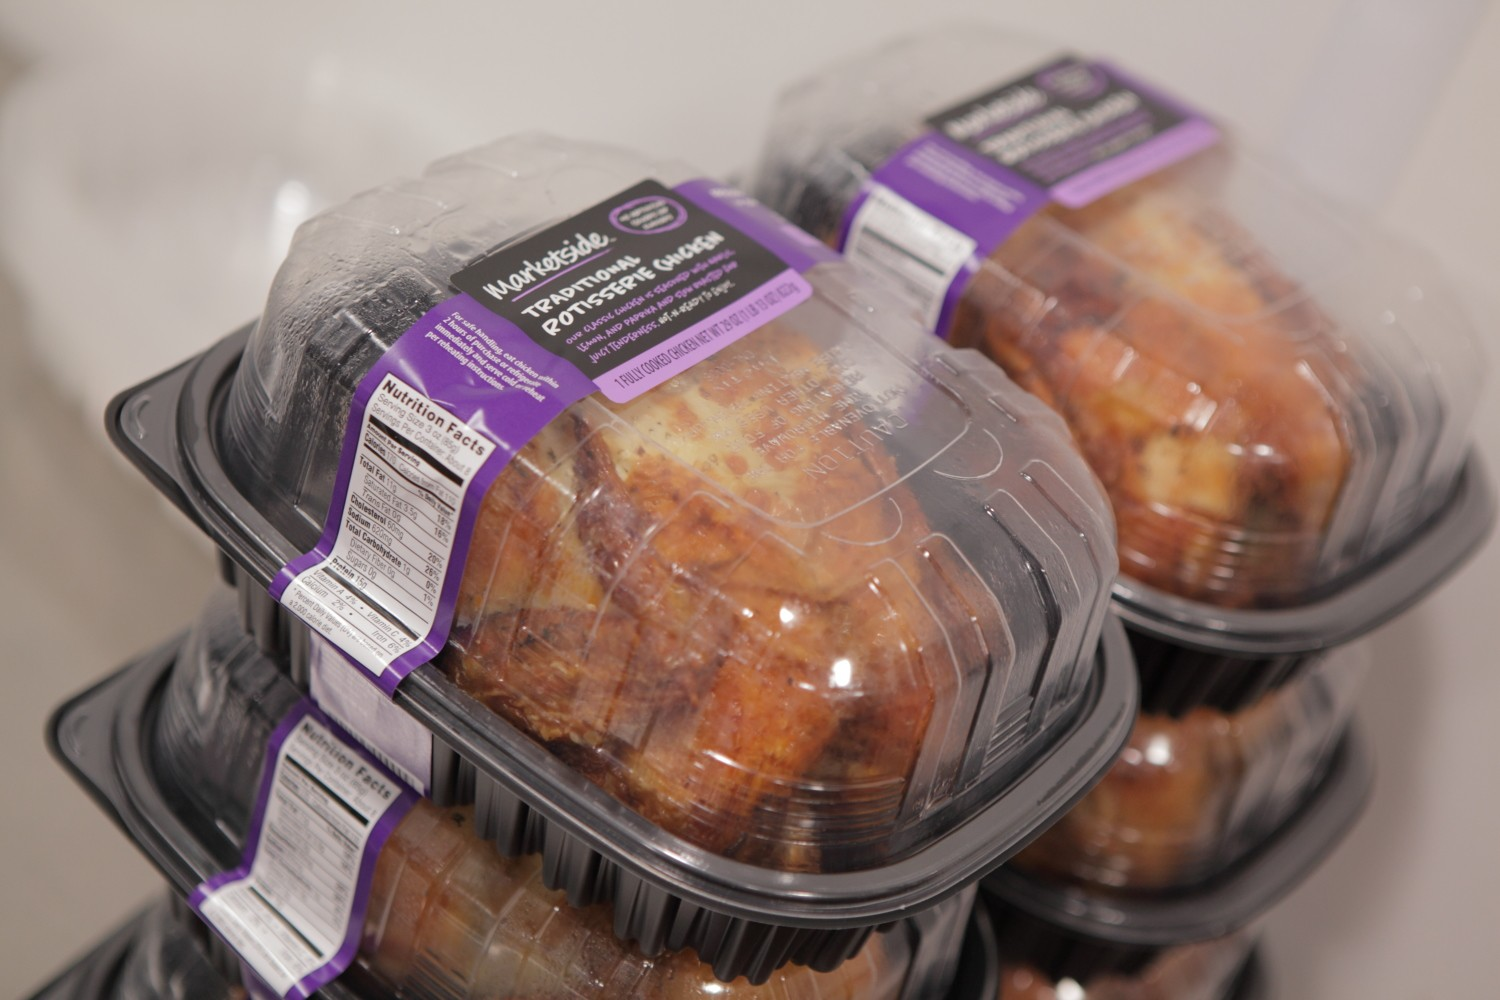 Two stacks of three rotisserie chicken packages with purple labels